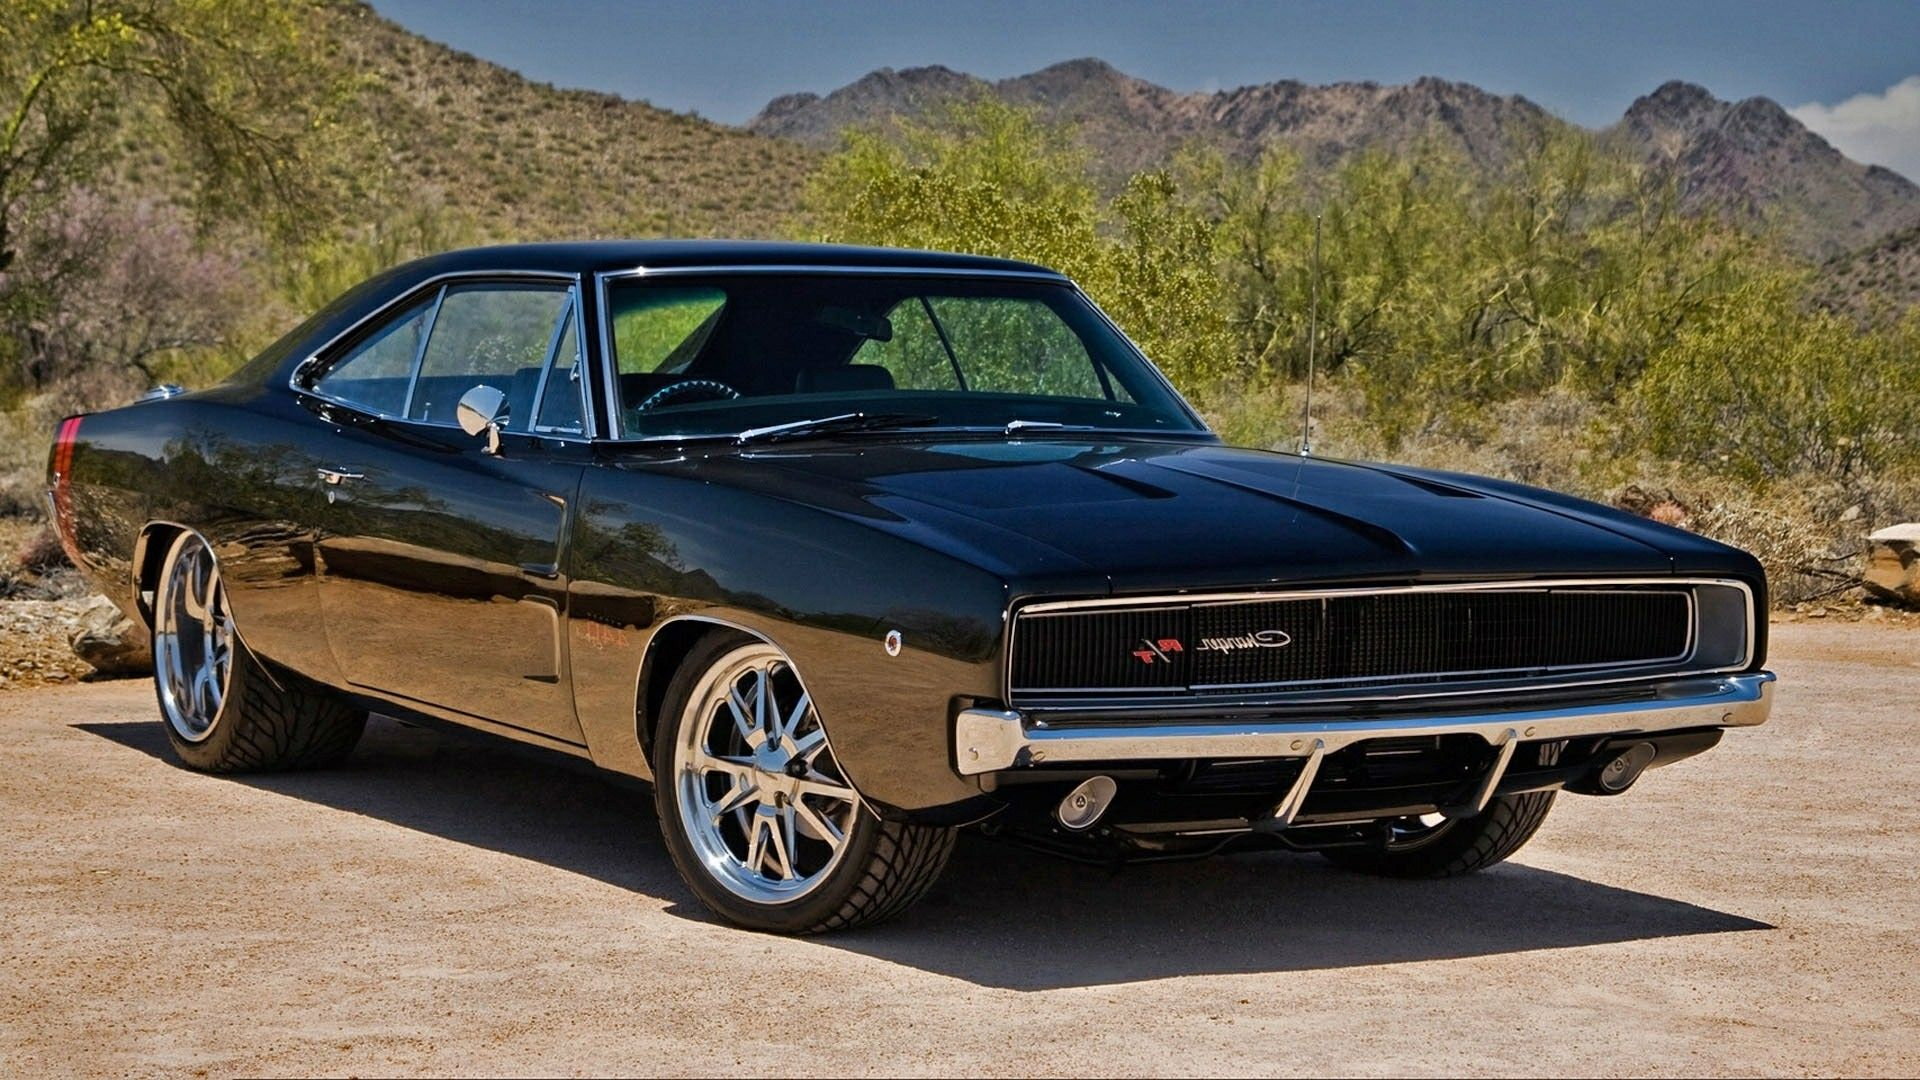 Dodge Charger -70   Cars   Cars by Jeni Countess   Pinterest   Dodge